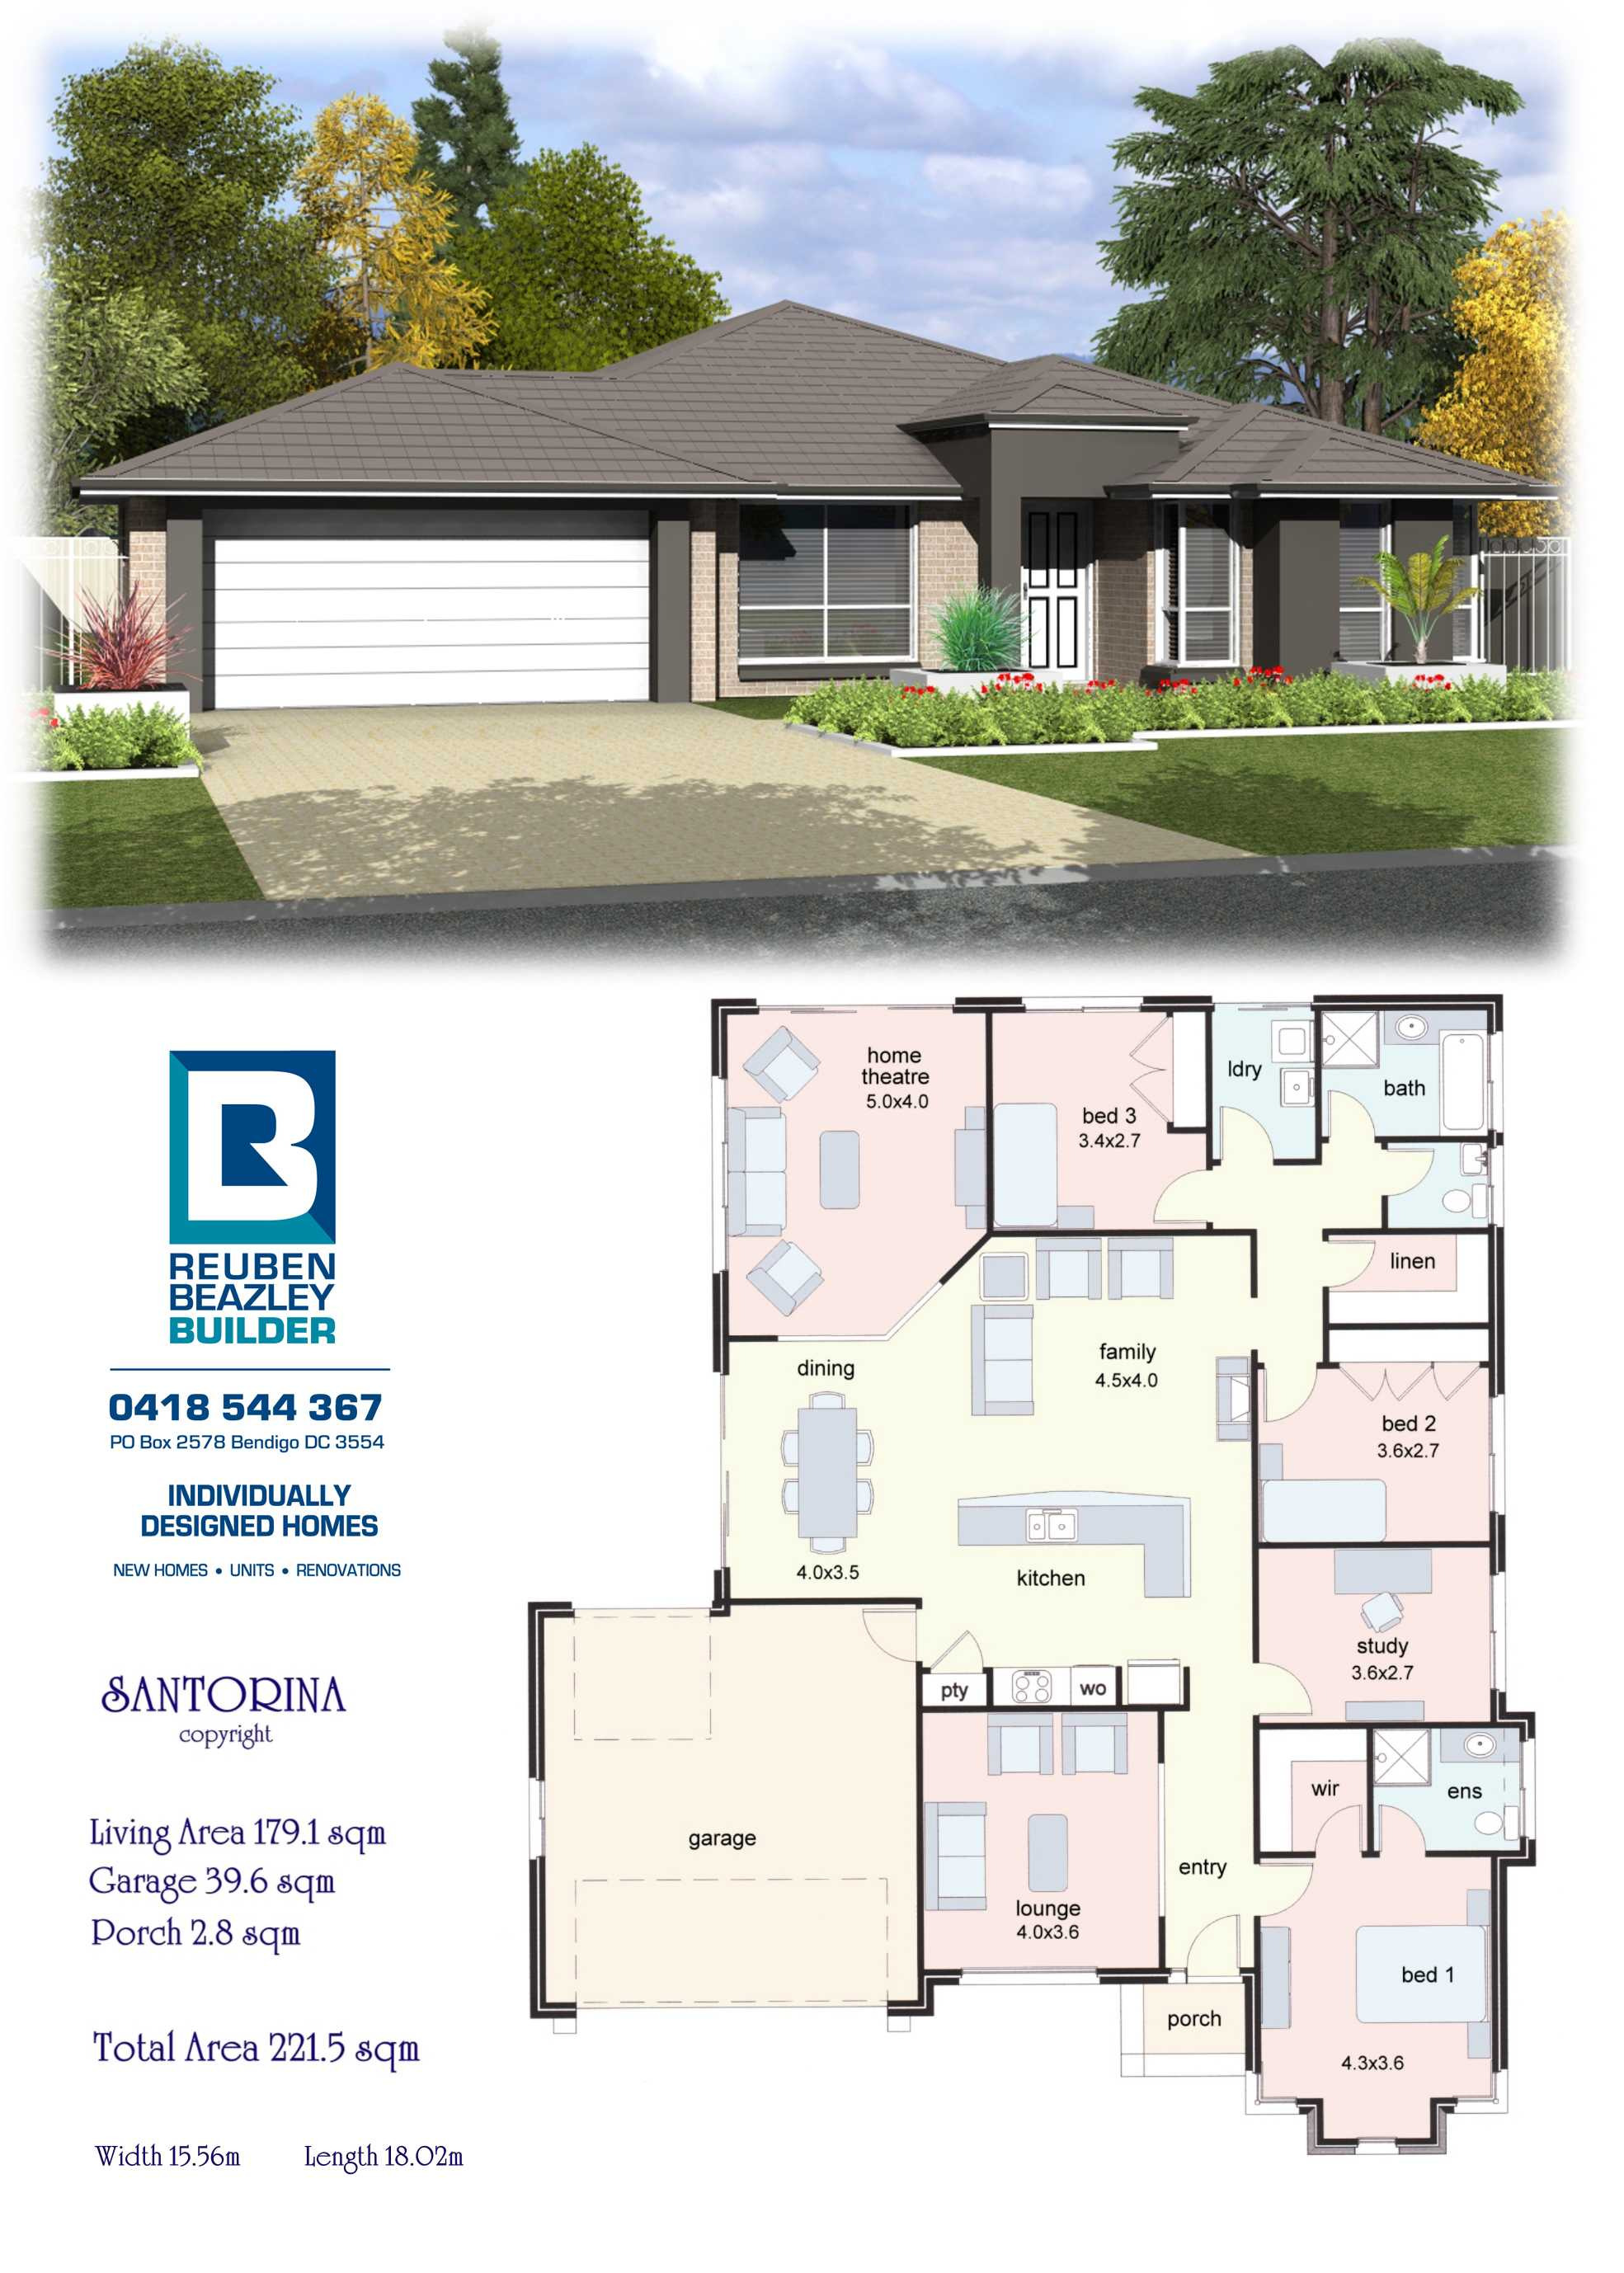 free australian house designs and floor plans with beautiful house plans south africa house plans of free australian house designs and floor plans